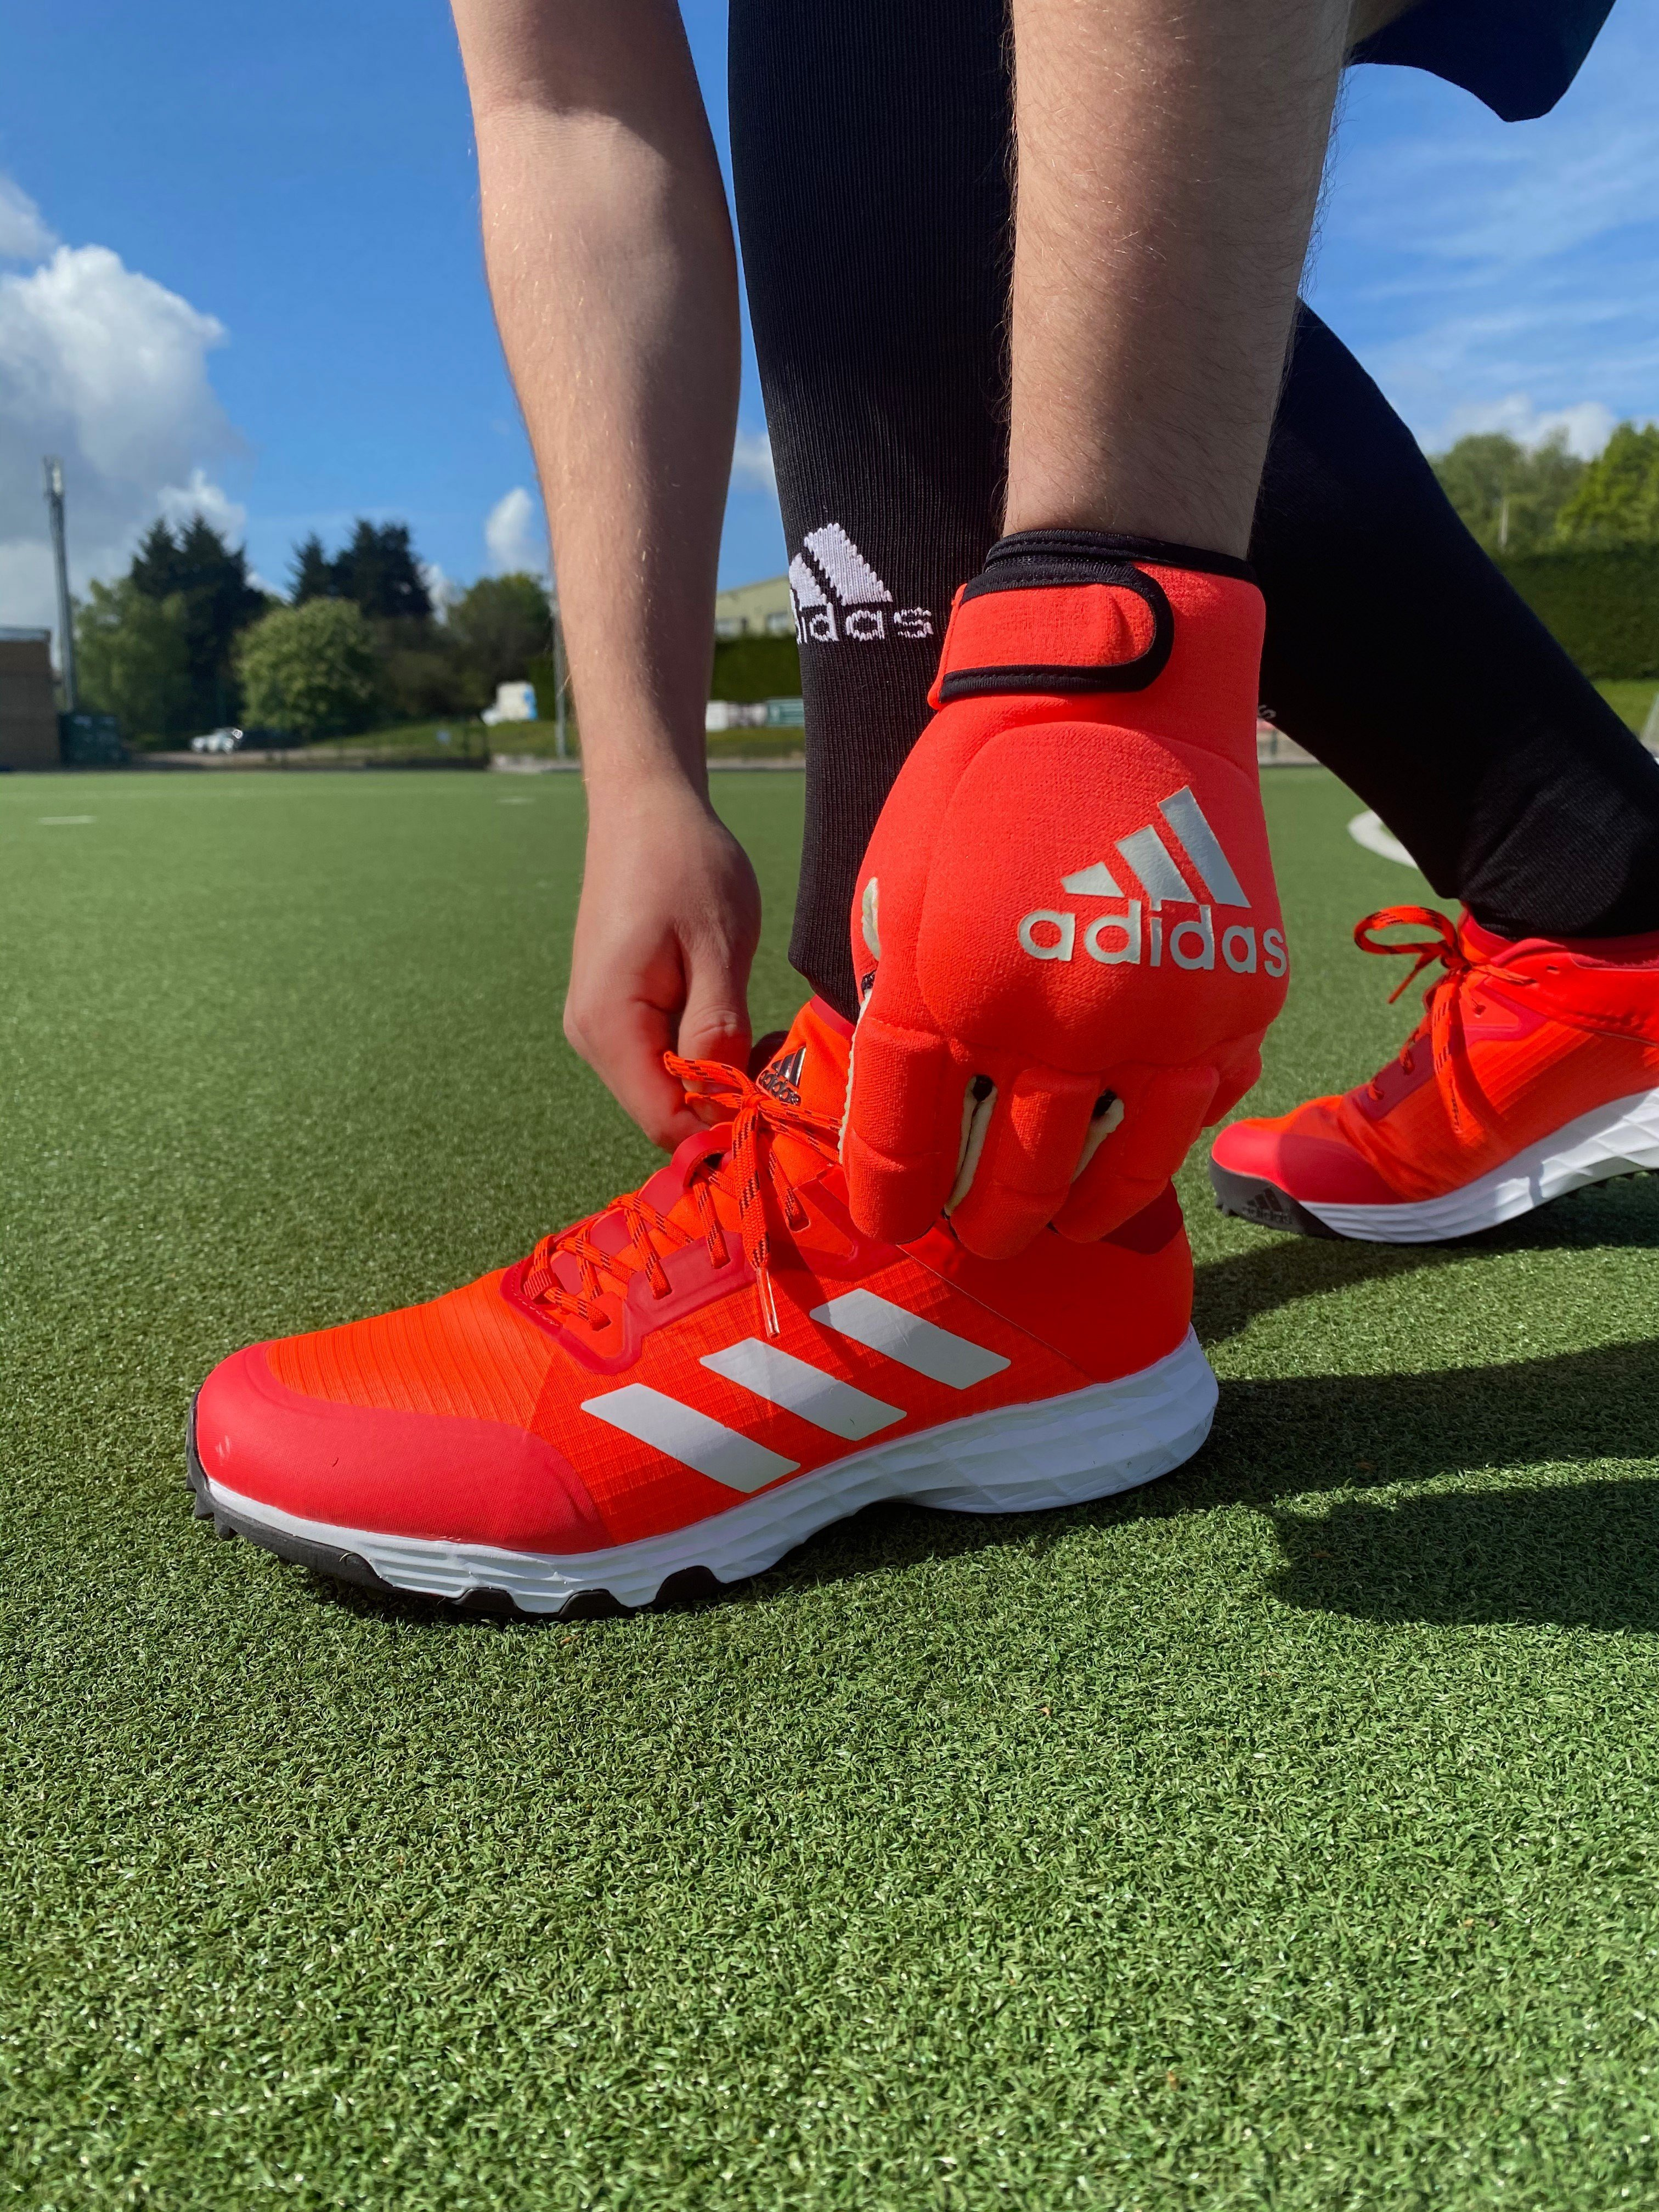 Adidas Lux 2.0 Hockey Shoes - Red/White